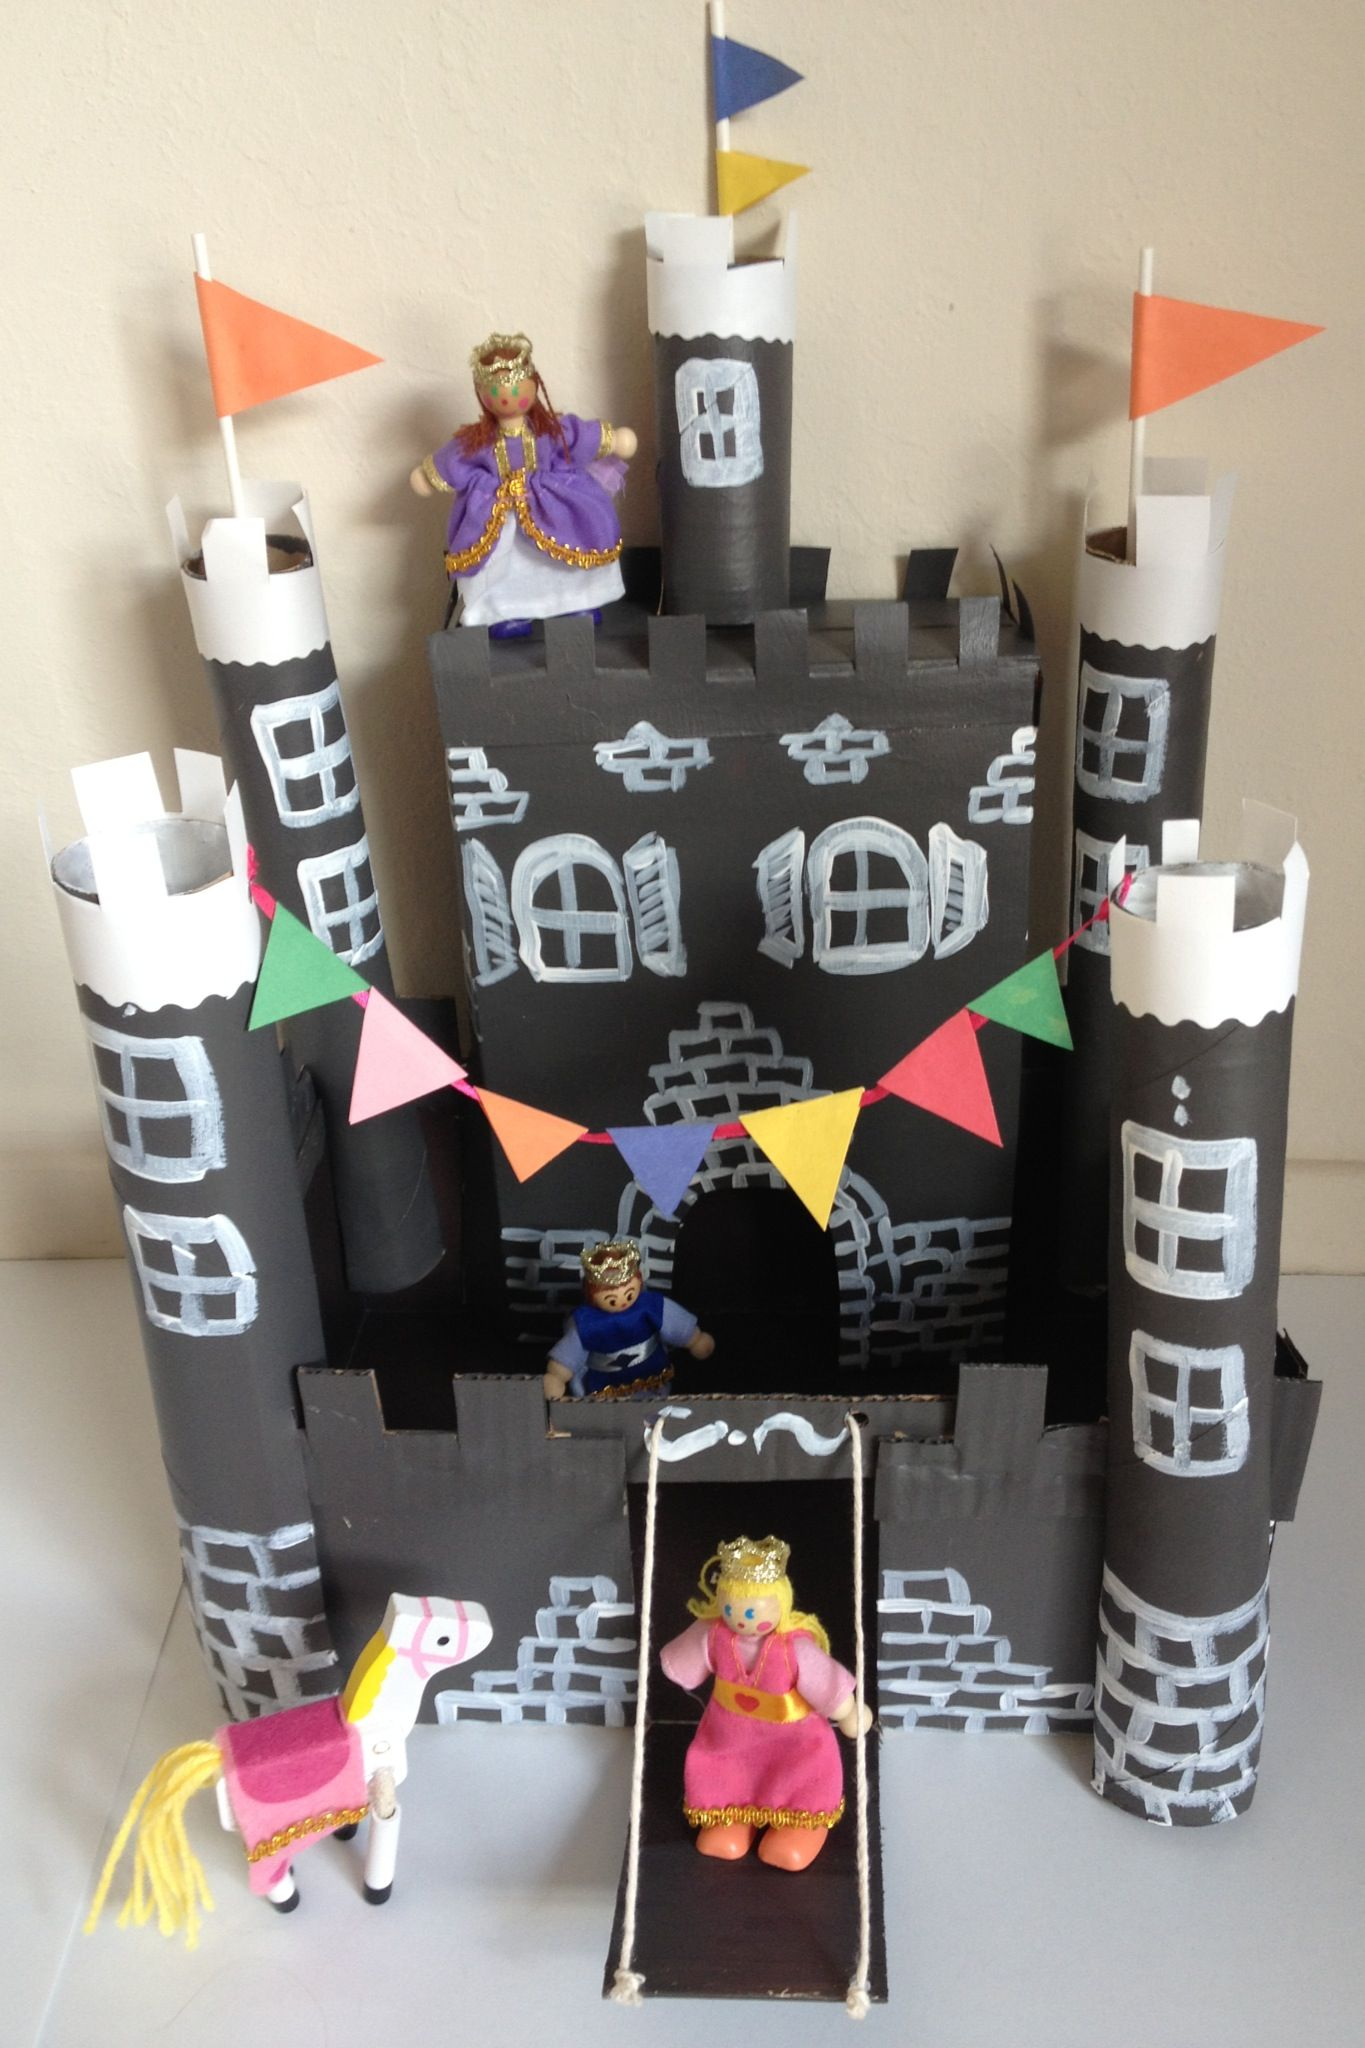 How to make a paper castle decoration - Cardboard Castle Craft Made From Stuff Around The House